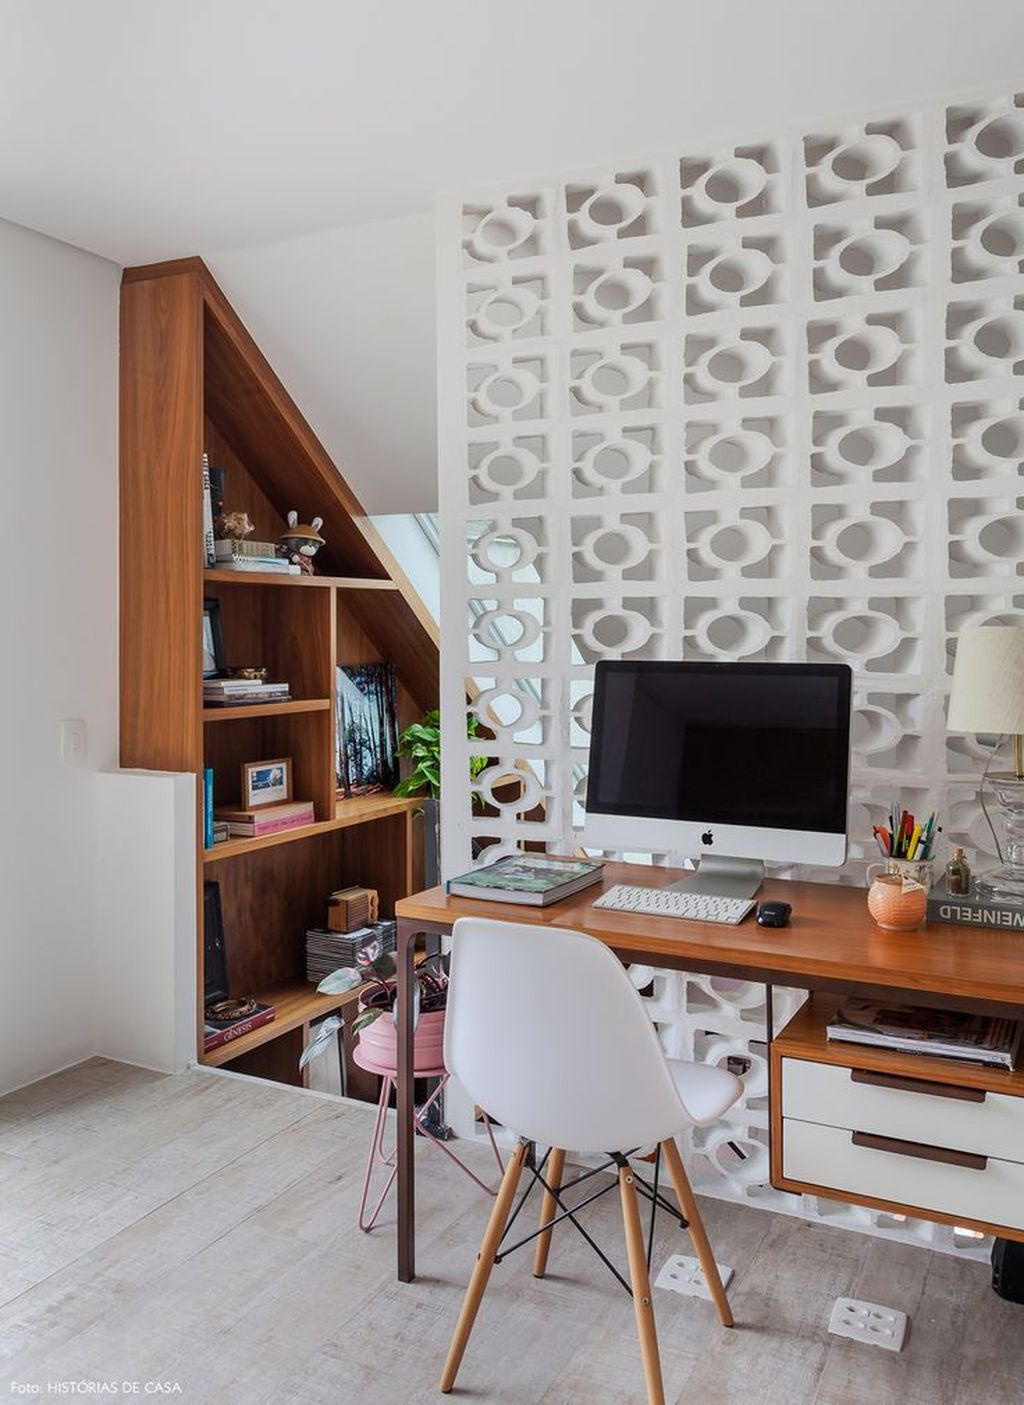 Modern And Cozy Office Interior Design Ideas To Makes You Feel Comfortable 70